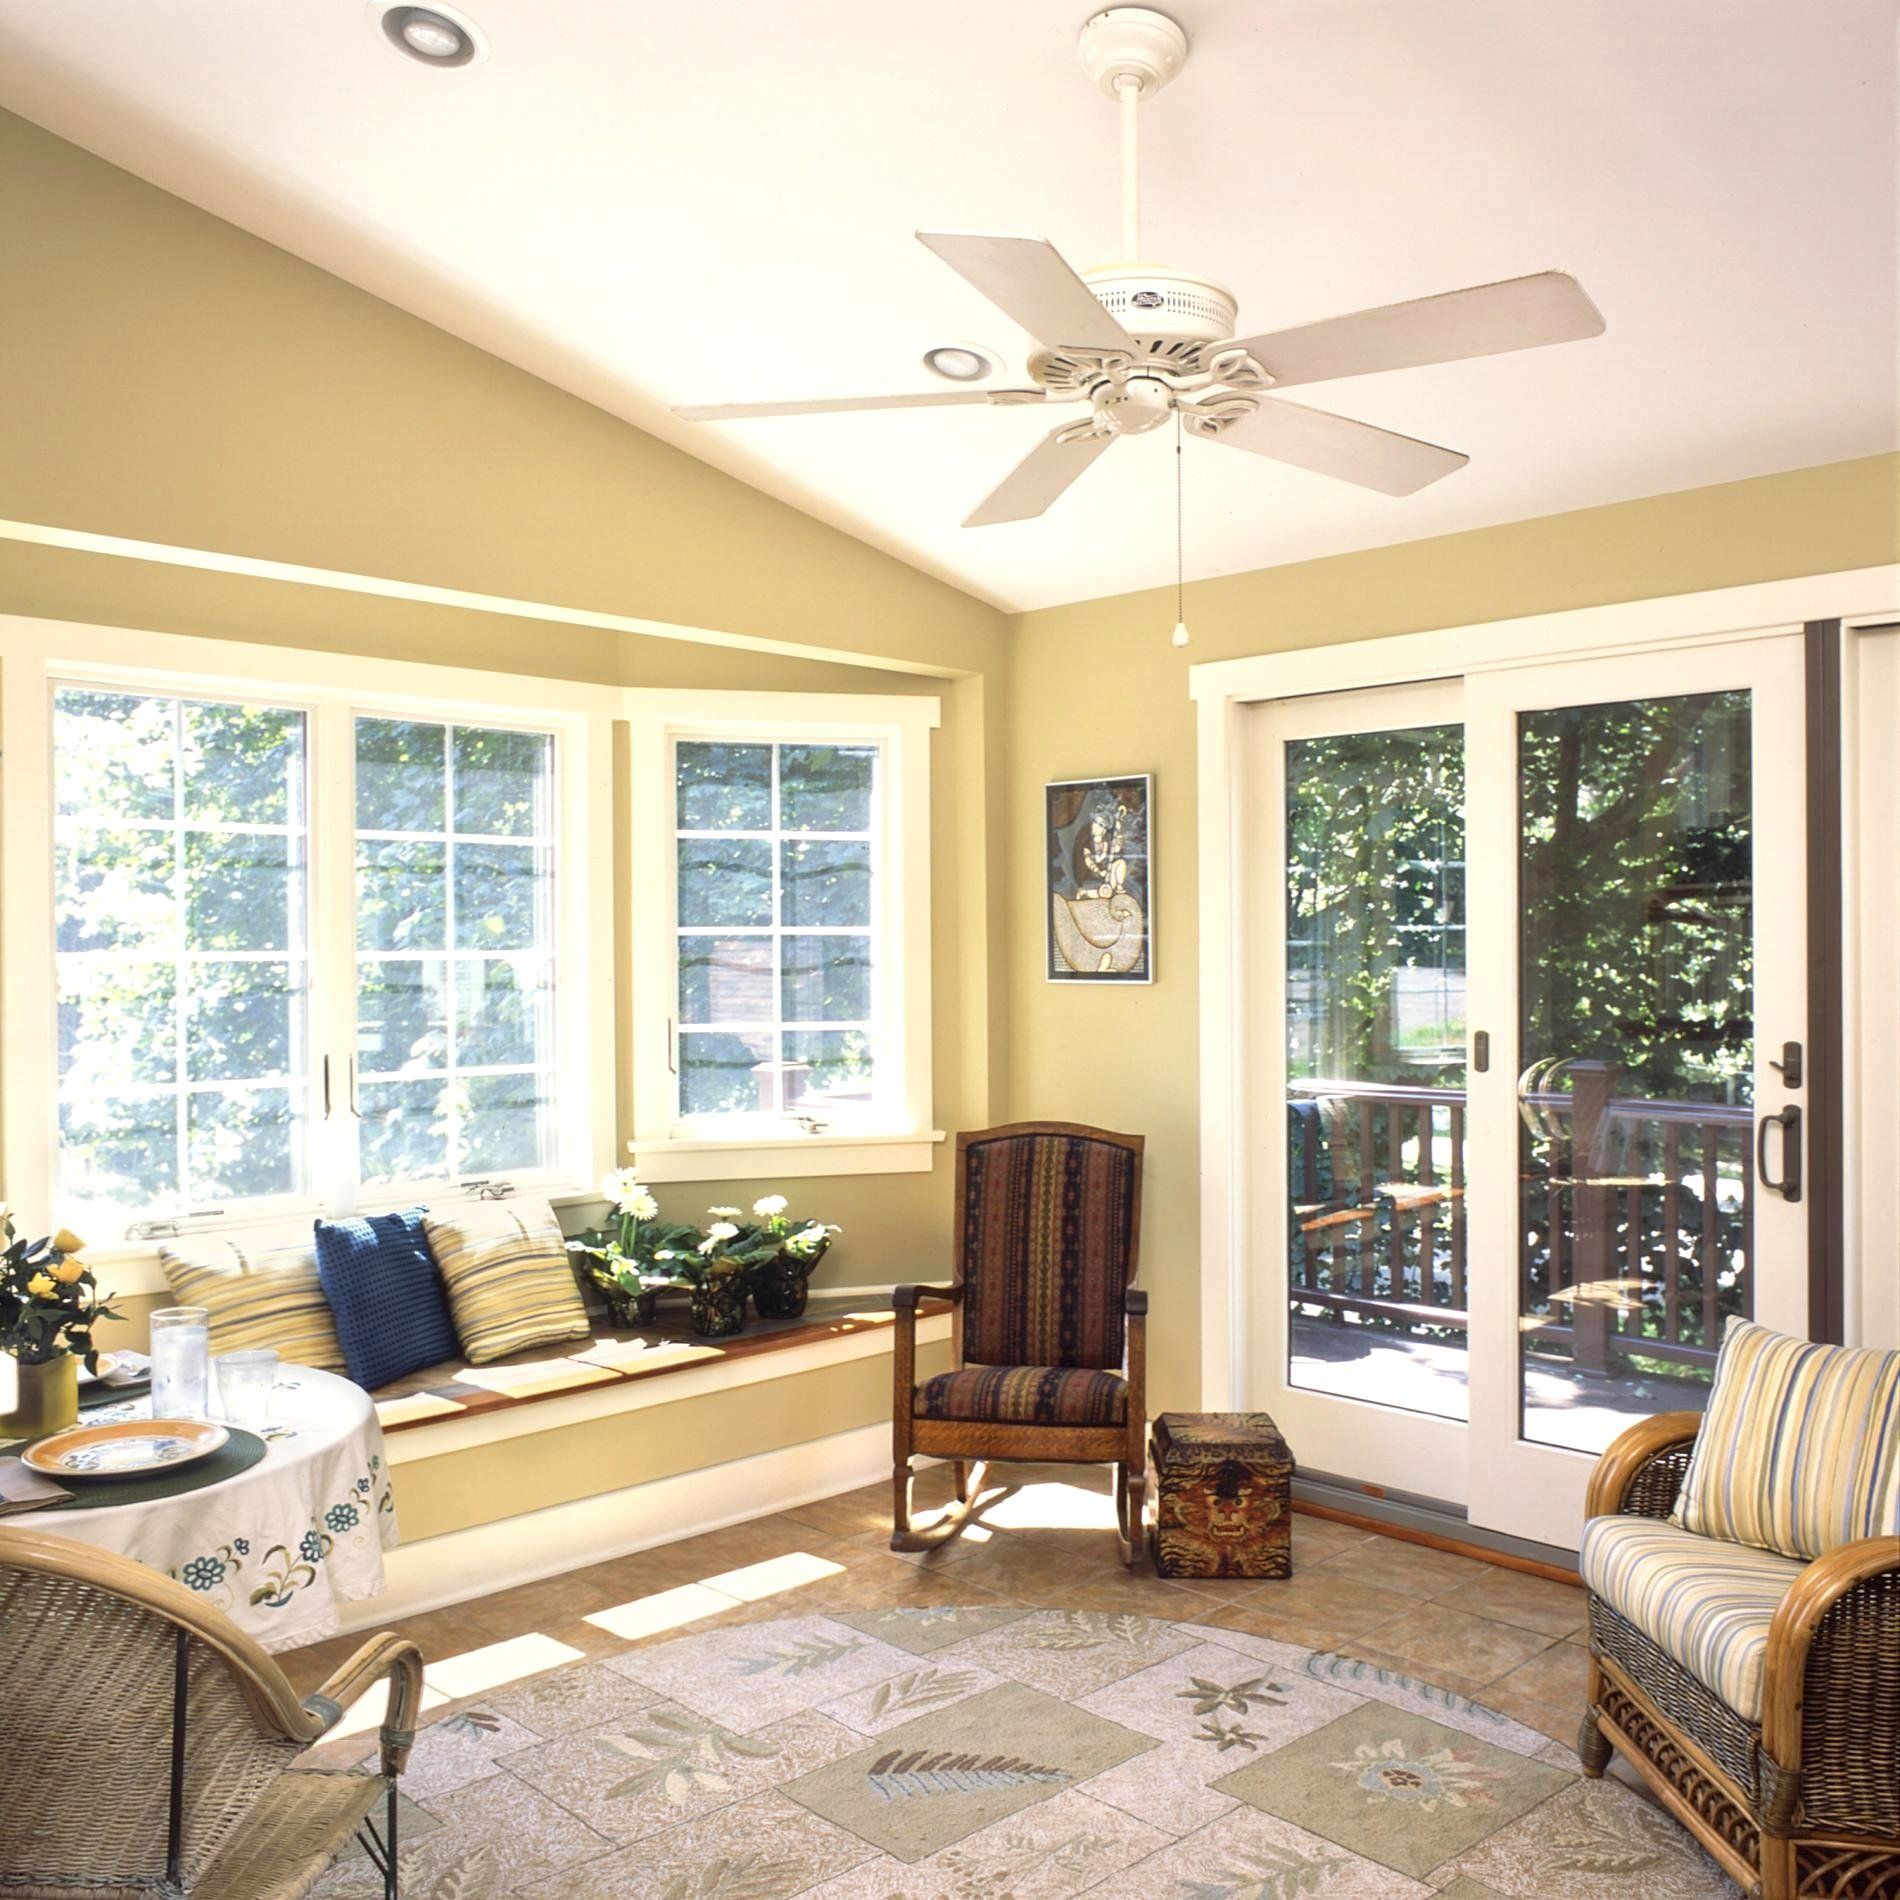 Comfy Sunroom Interior Nuance With Gold Wall Paint Color